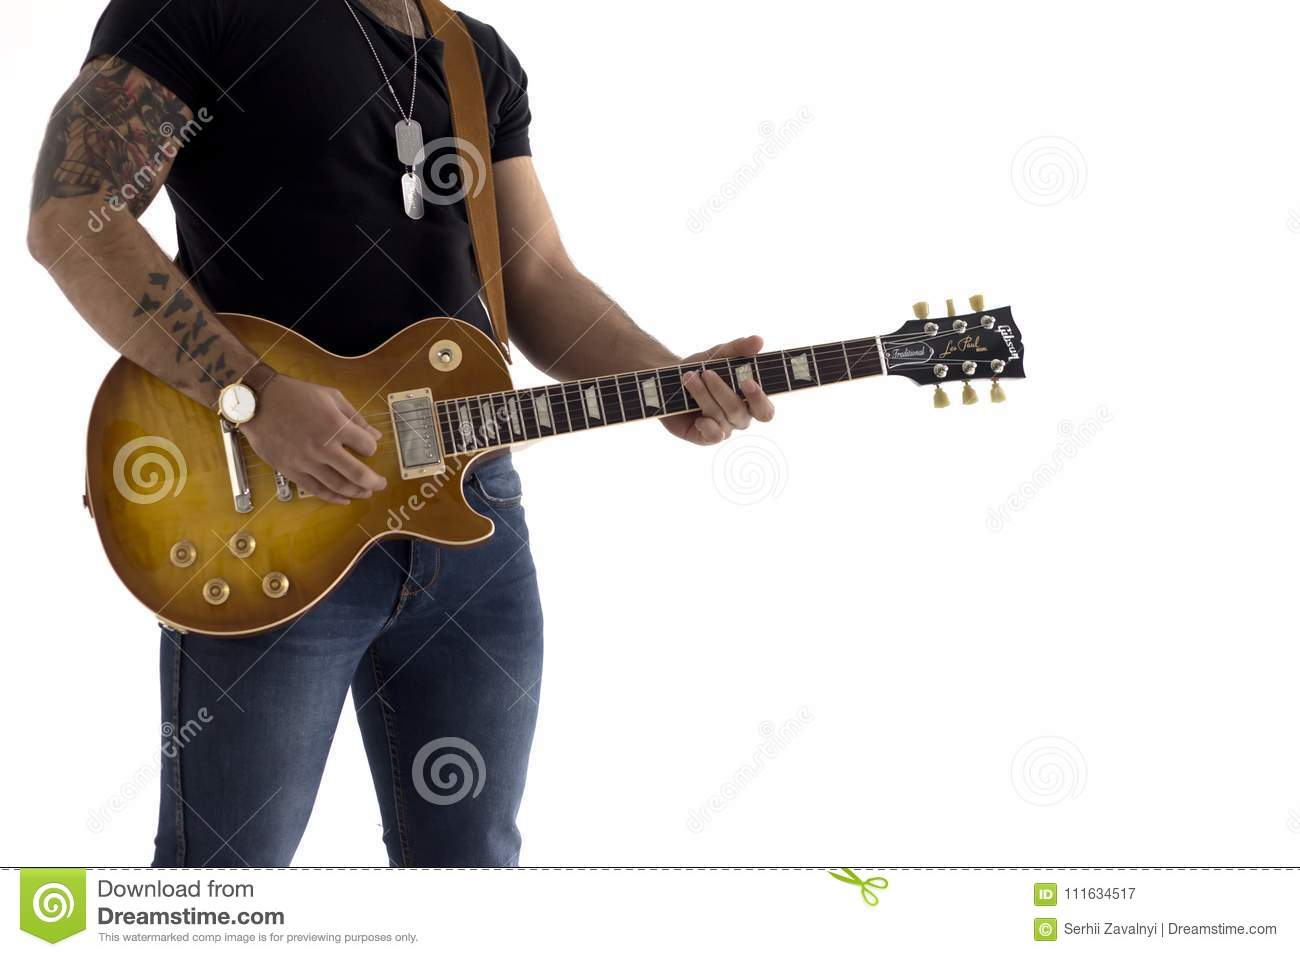 A man with an electric guitar Leaning against a cement wall Happy and relaxed Waiting for the show.